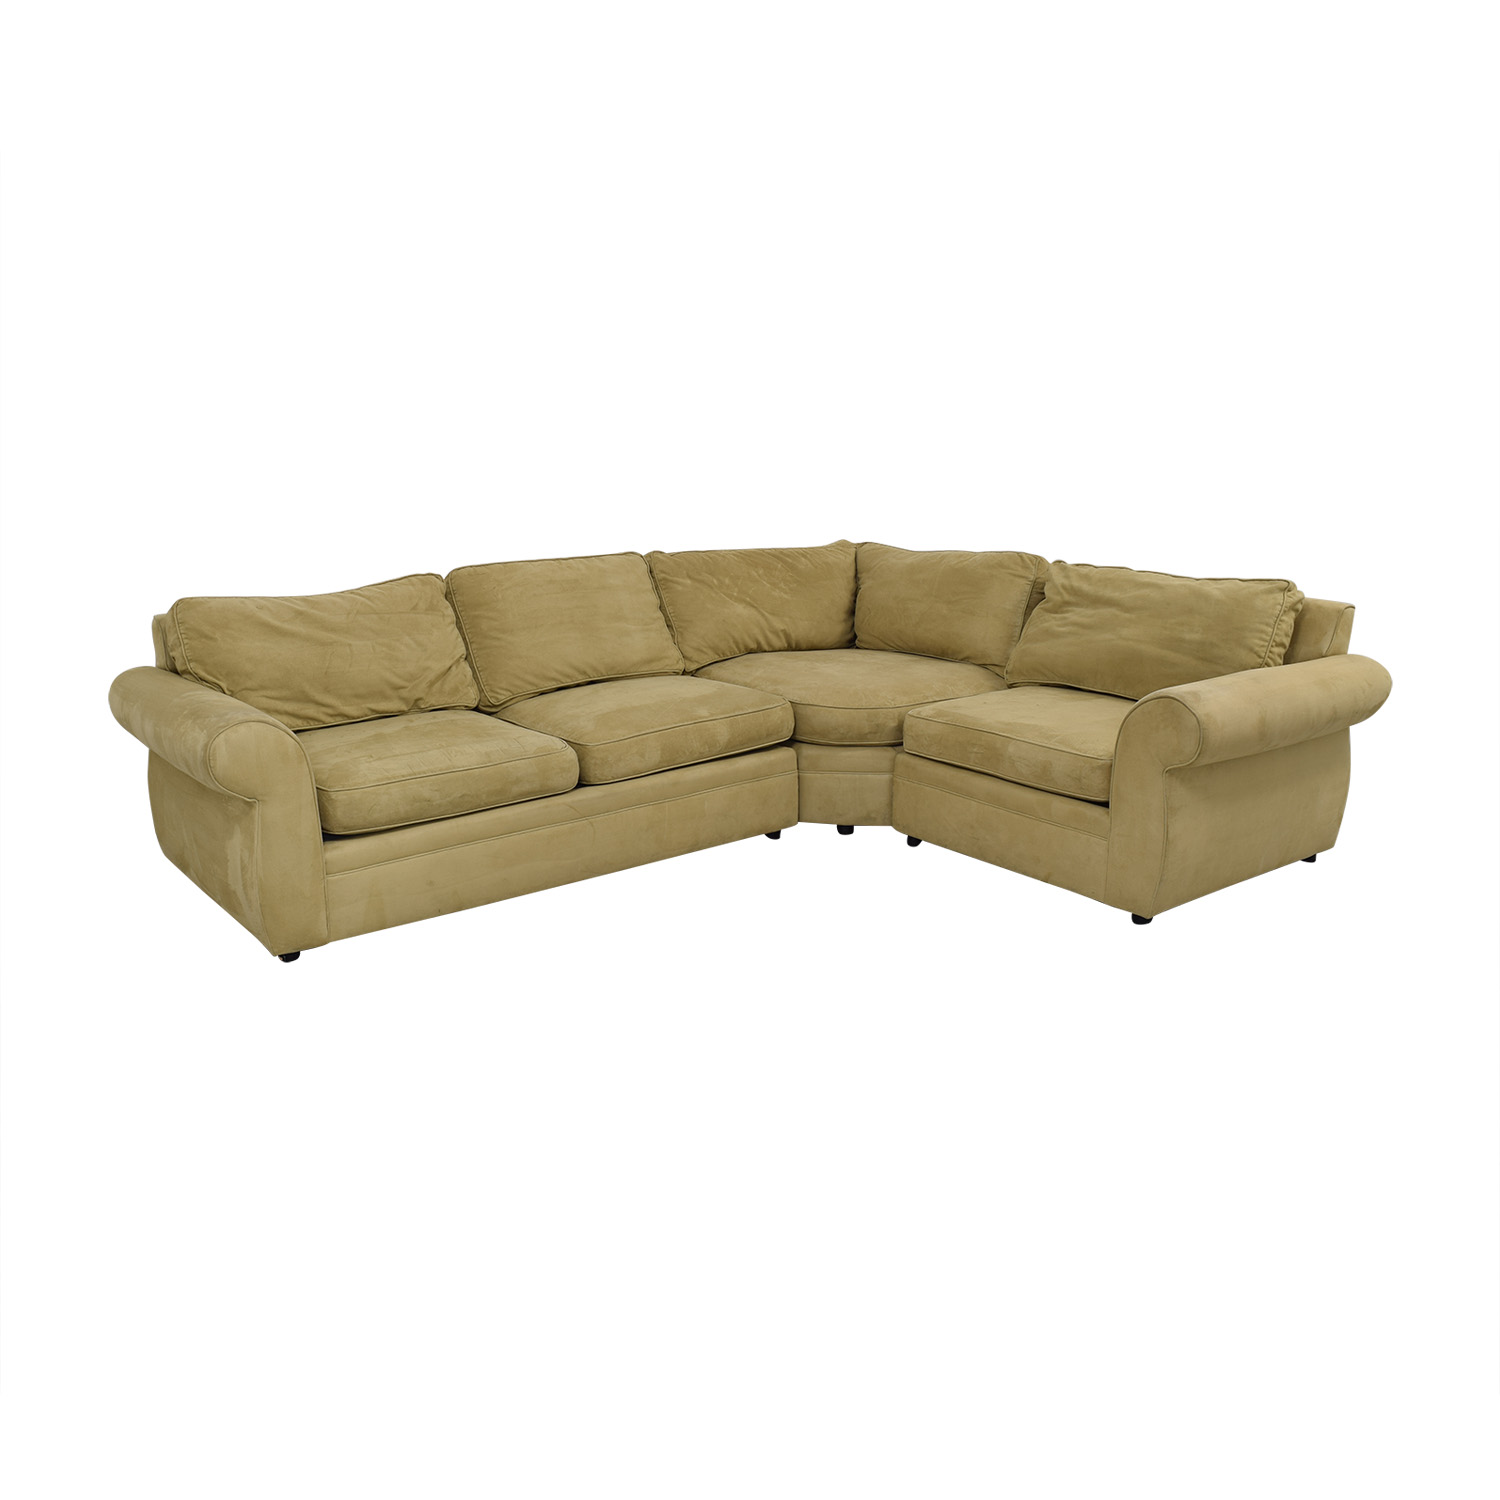 Outstanding 83 Off Pottery Barn Pottery Barn Pearce Upholstered 3 Piece Sectional With Wedge Sofas Machost Co Dining Chair Design Ideas Machostcouk